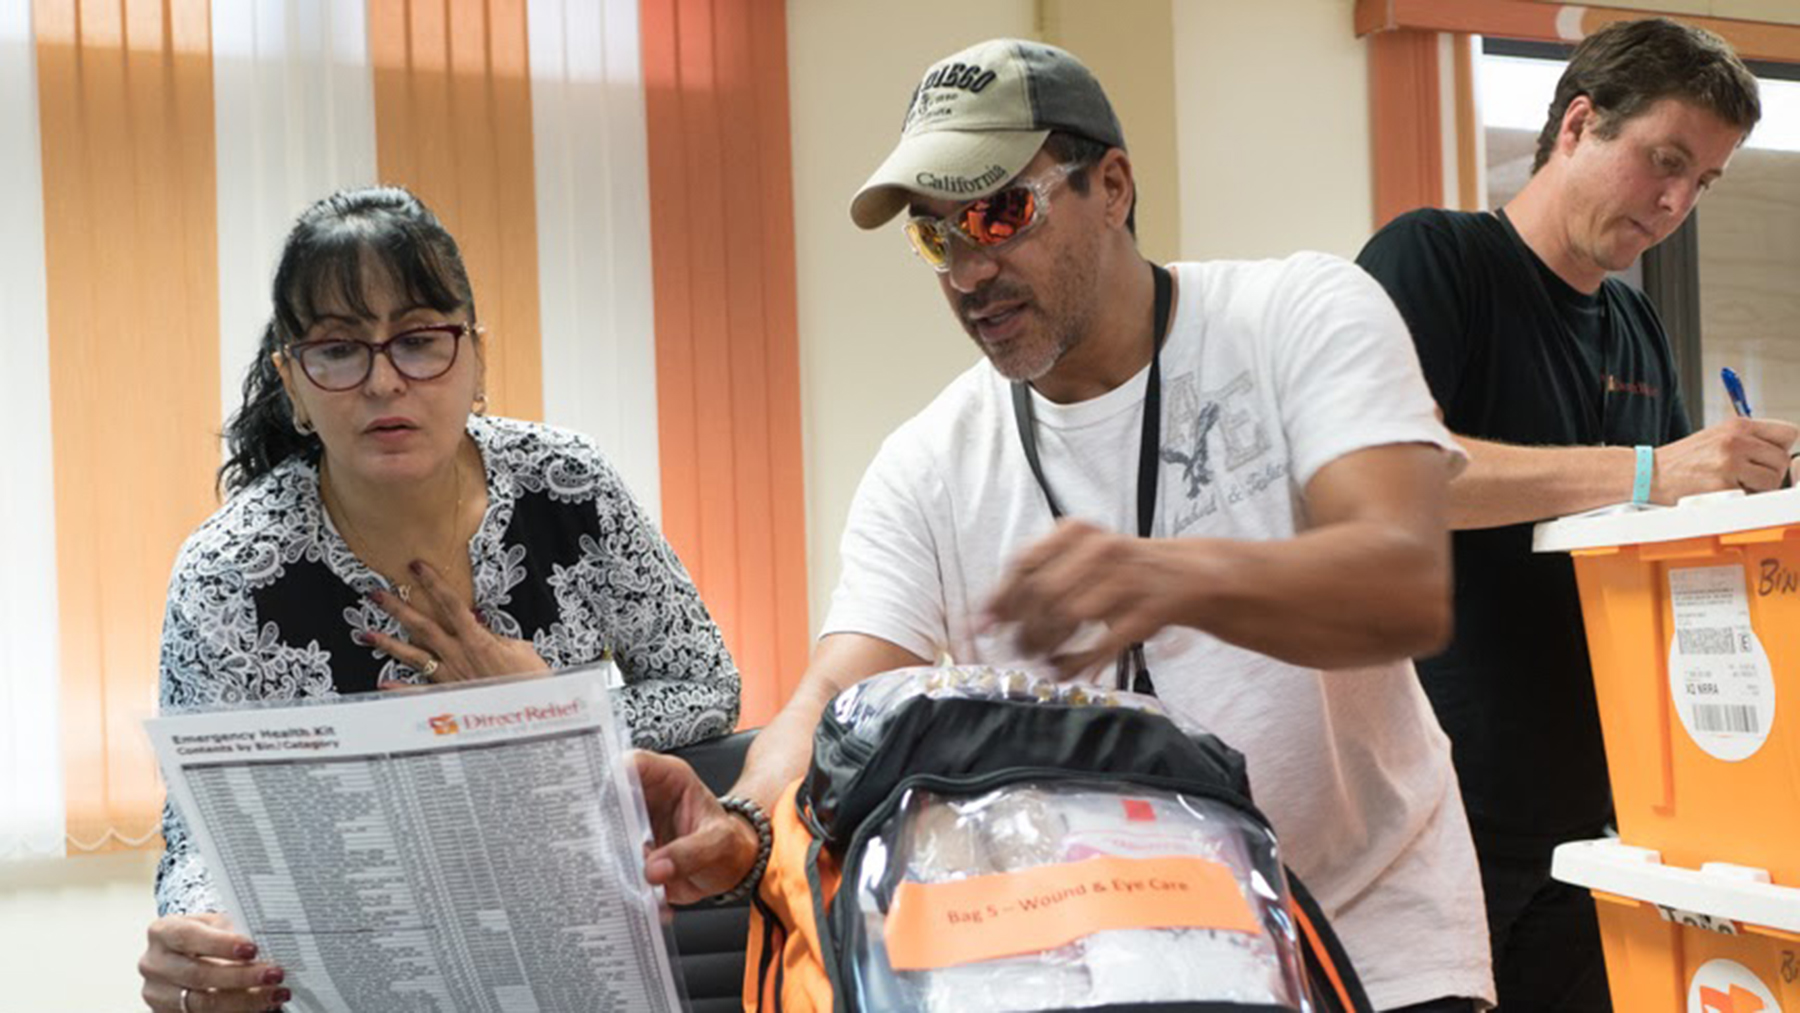 Dolores Morales, Executive Director of Migrant Health Center  listens to Daniel Ramos of the Asociacion de Salud Primaria de Puerto Rico as she receives medical supplies from Direct Relief following the path of Hurricane Maria through Puerto Rico on October 6, 2017 in Mayaguez. Morales said she feels the health center is better prepared for the next storm. (Photo by Angel Valentin for Direct Relief)